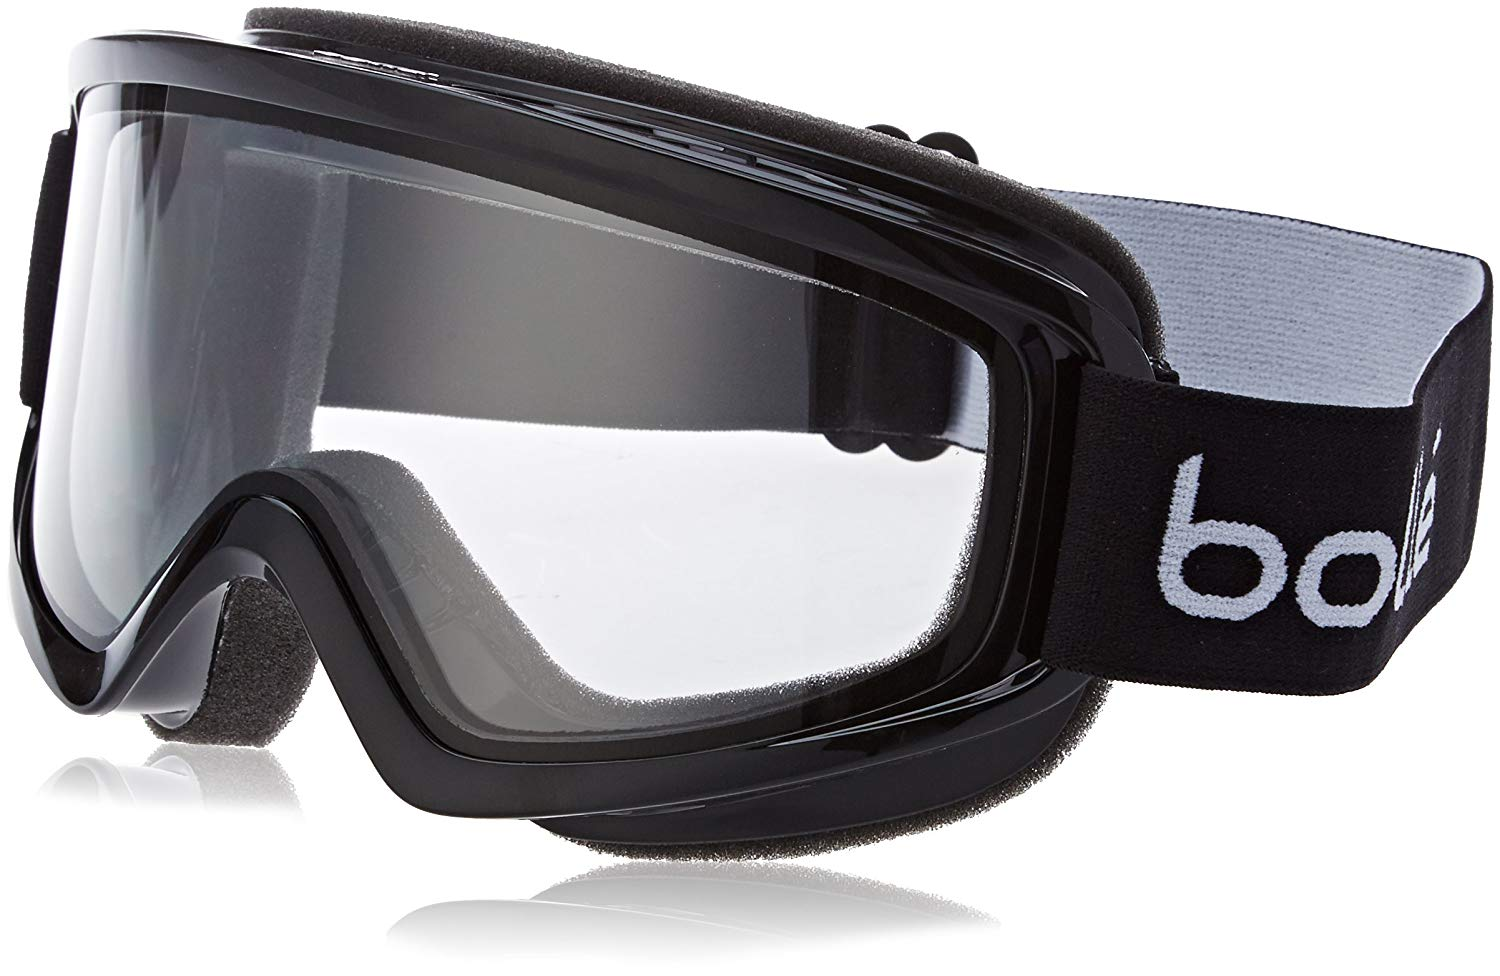 a5ec68b264 Replacement lens for Bolle Nova and Bolle Showtime ski goggles. Get  Quotations · Bolle Freeze Ski Goggles